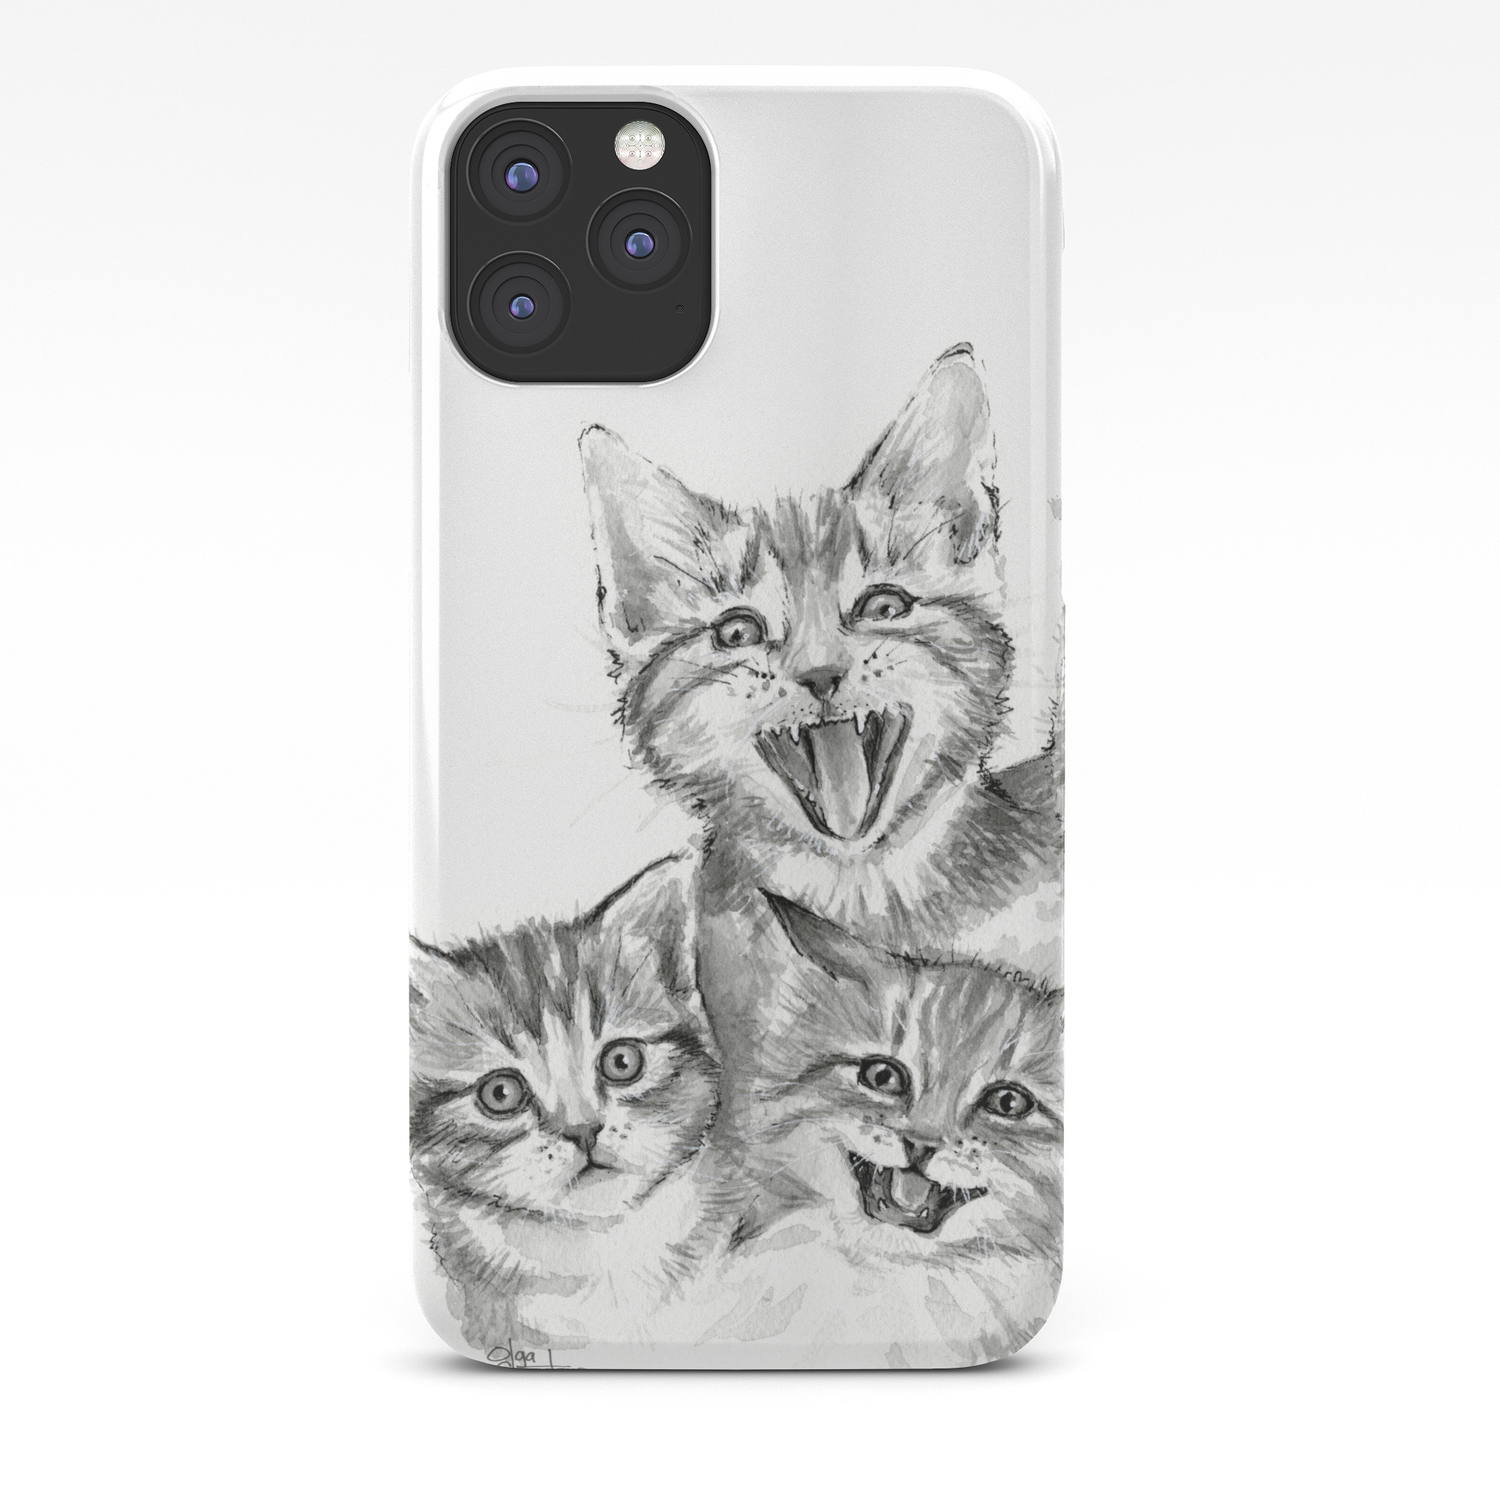 Kittens Pattern Cute Meowing Cats Iphone Case